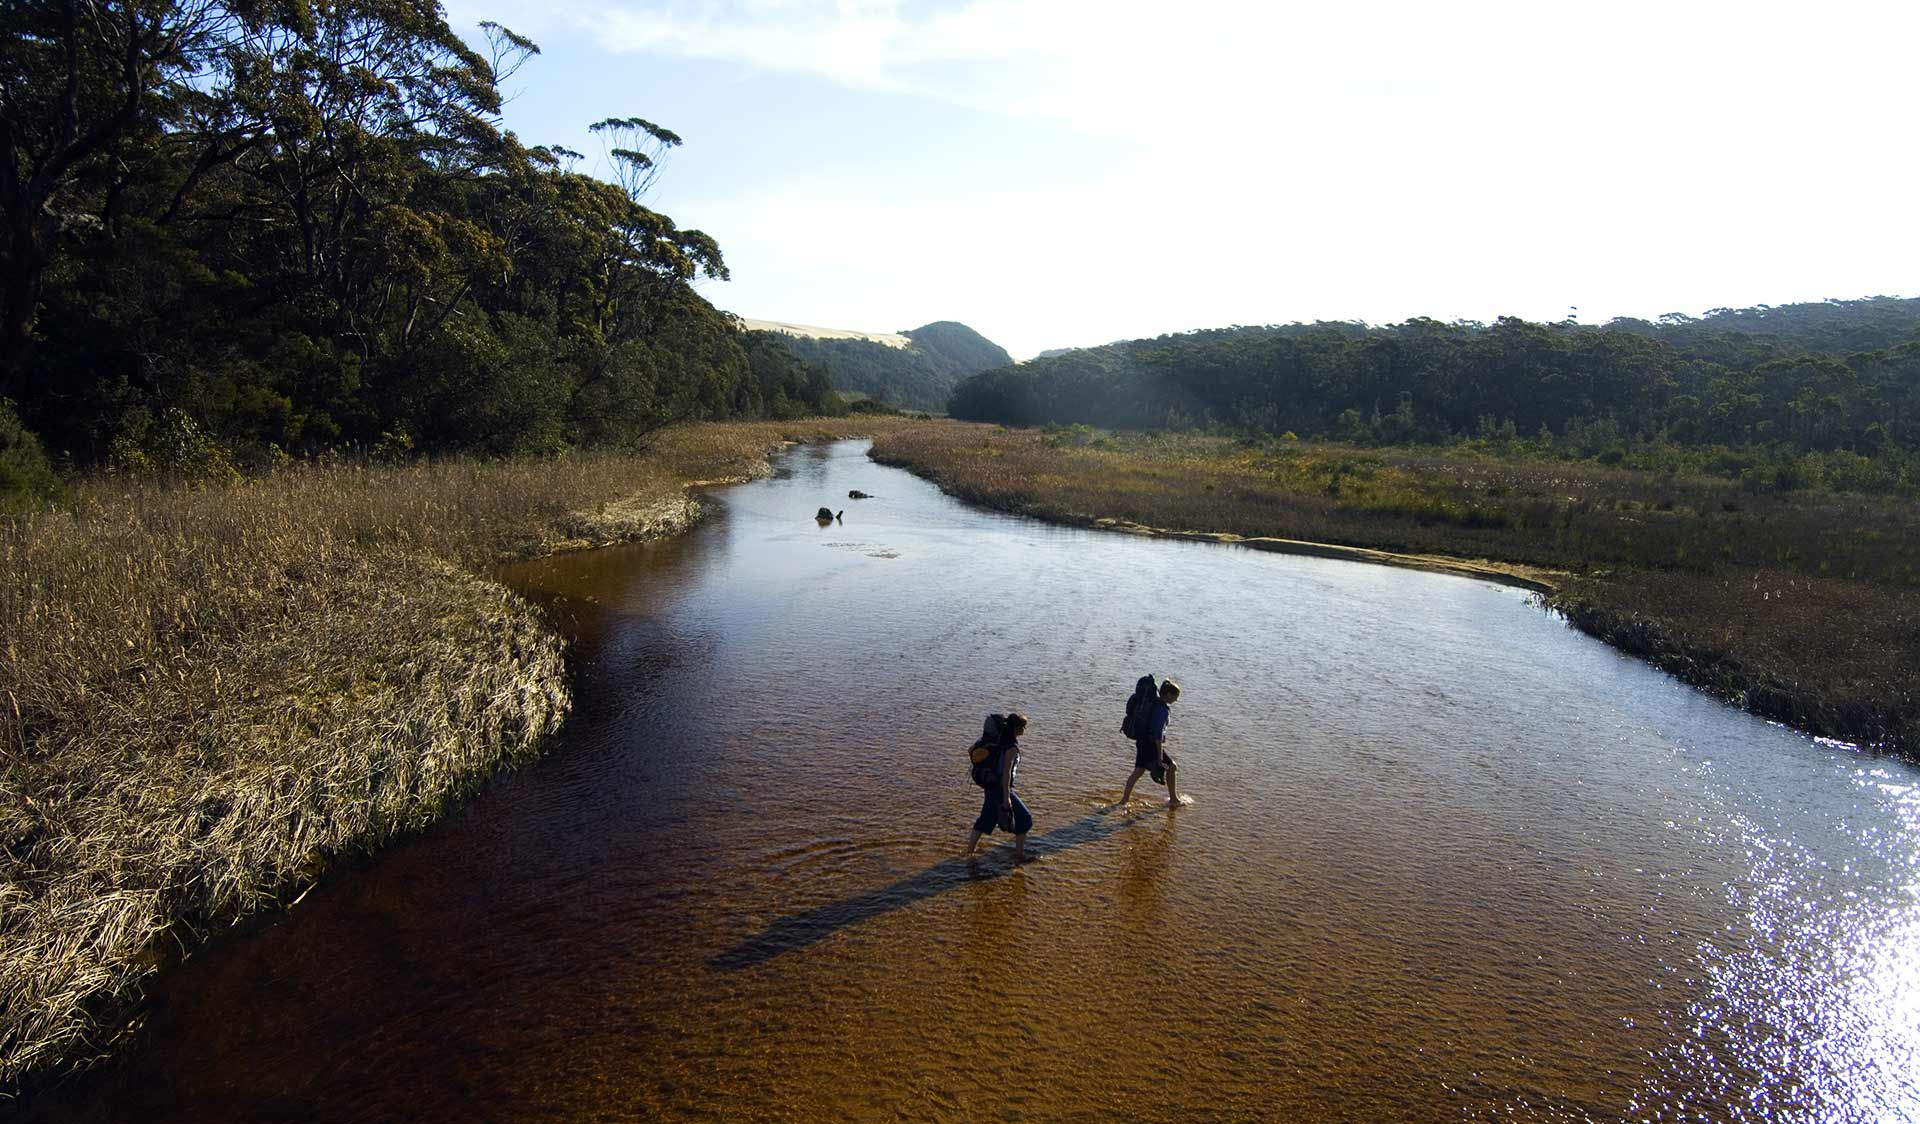 Two hikers cross an estuary in the Croajingolong National Park.